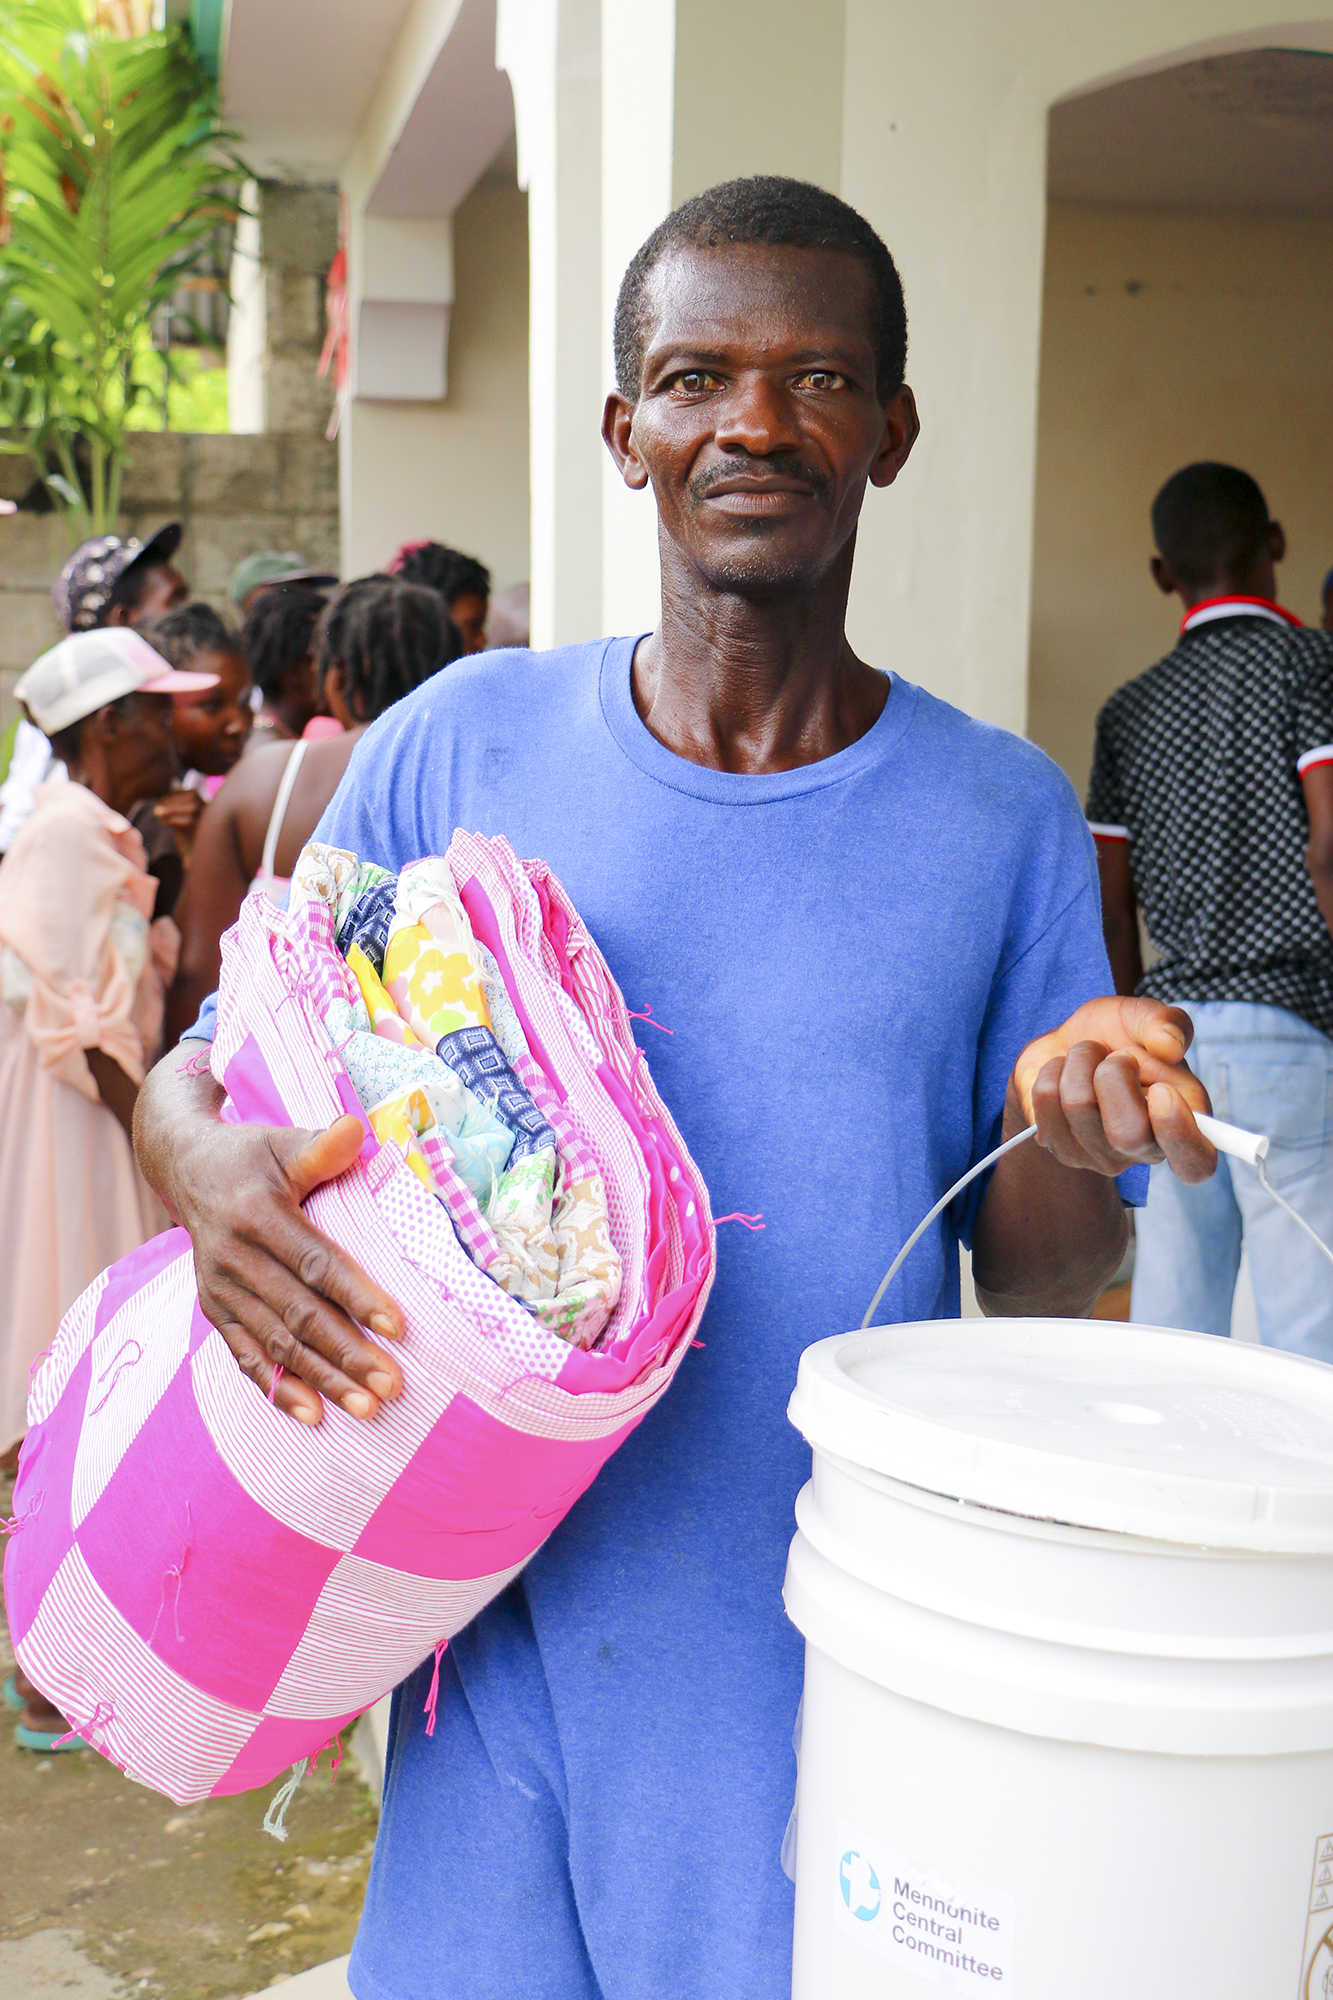 Osa Jonmarits receives material aid from MCC at a distribution point in the town of La Chapelle the next day. MCC material aid included comforters, an MCC relief bucket, and water purification tablets. Photo/Annalee Giesbrecht